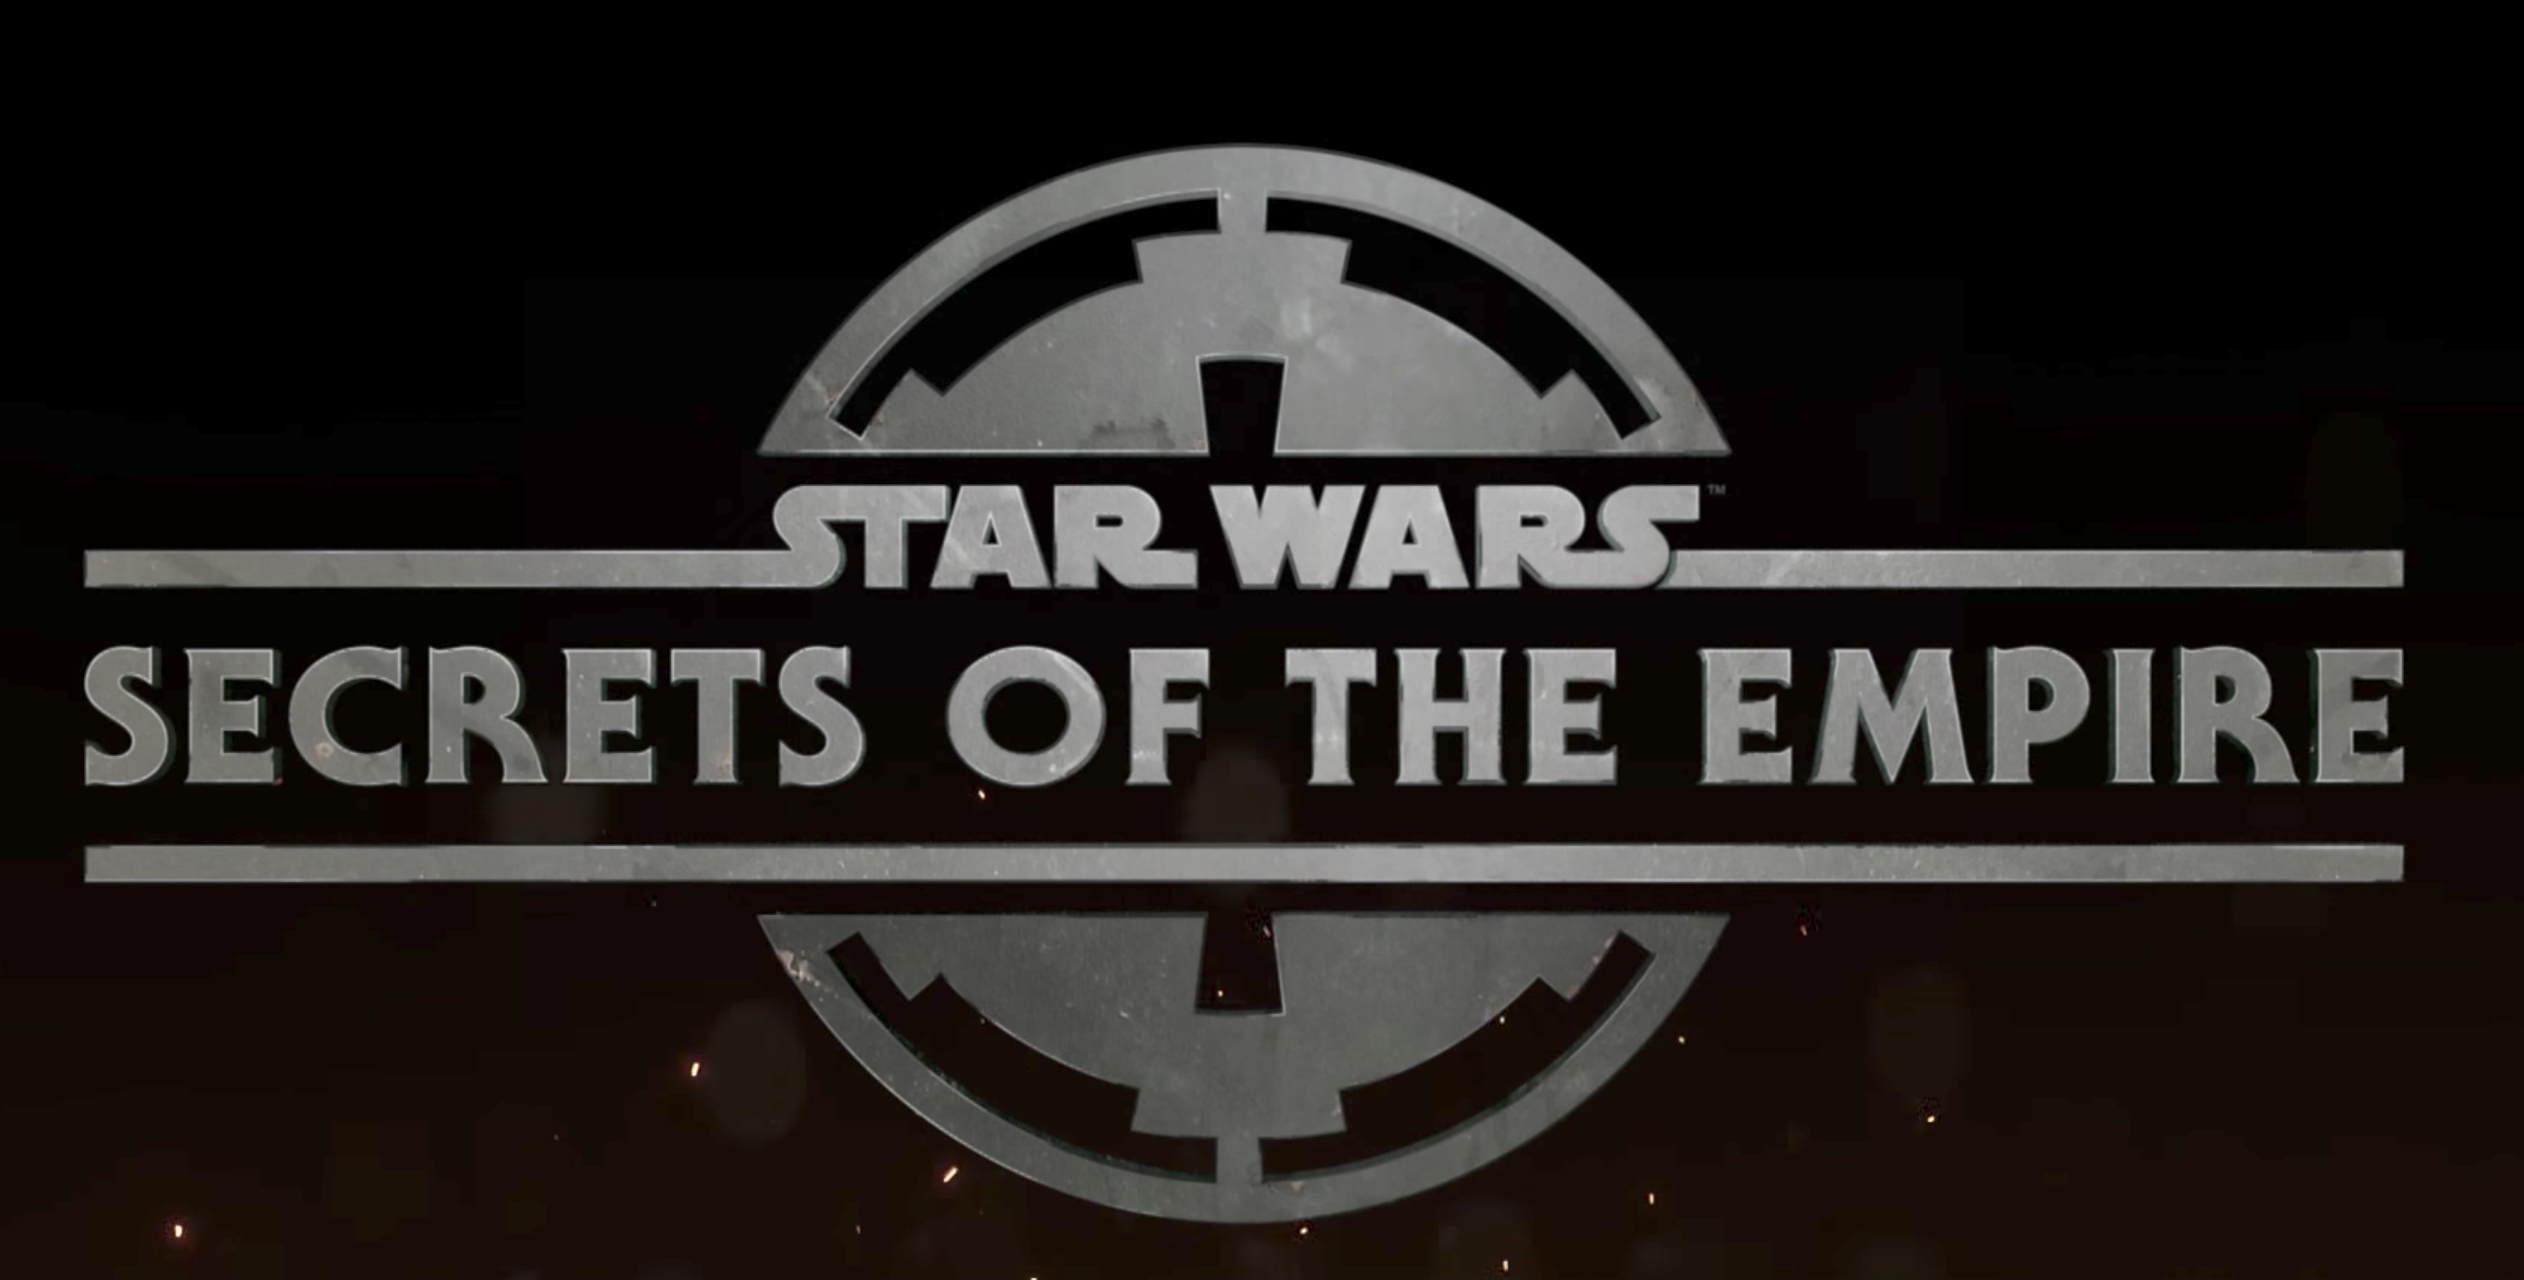 Heres The Trailer For The New Star Wars Vr Experience Coming To